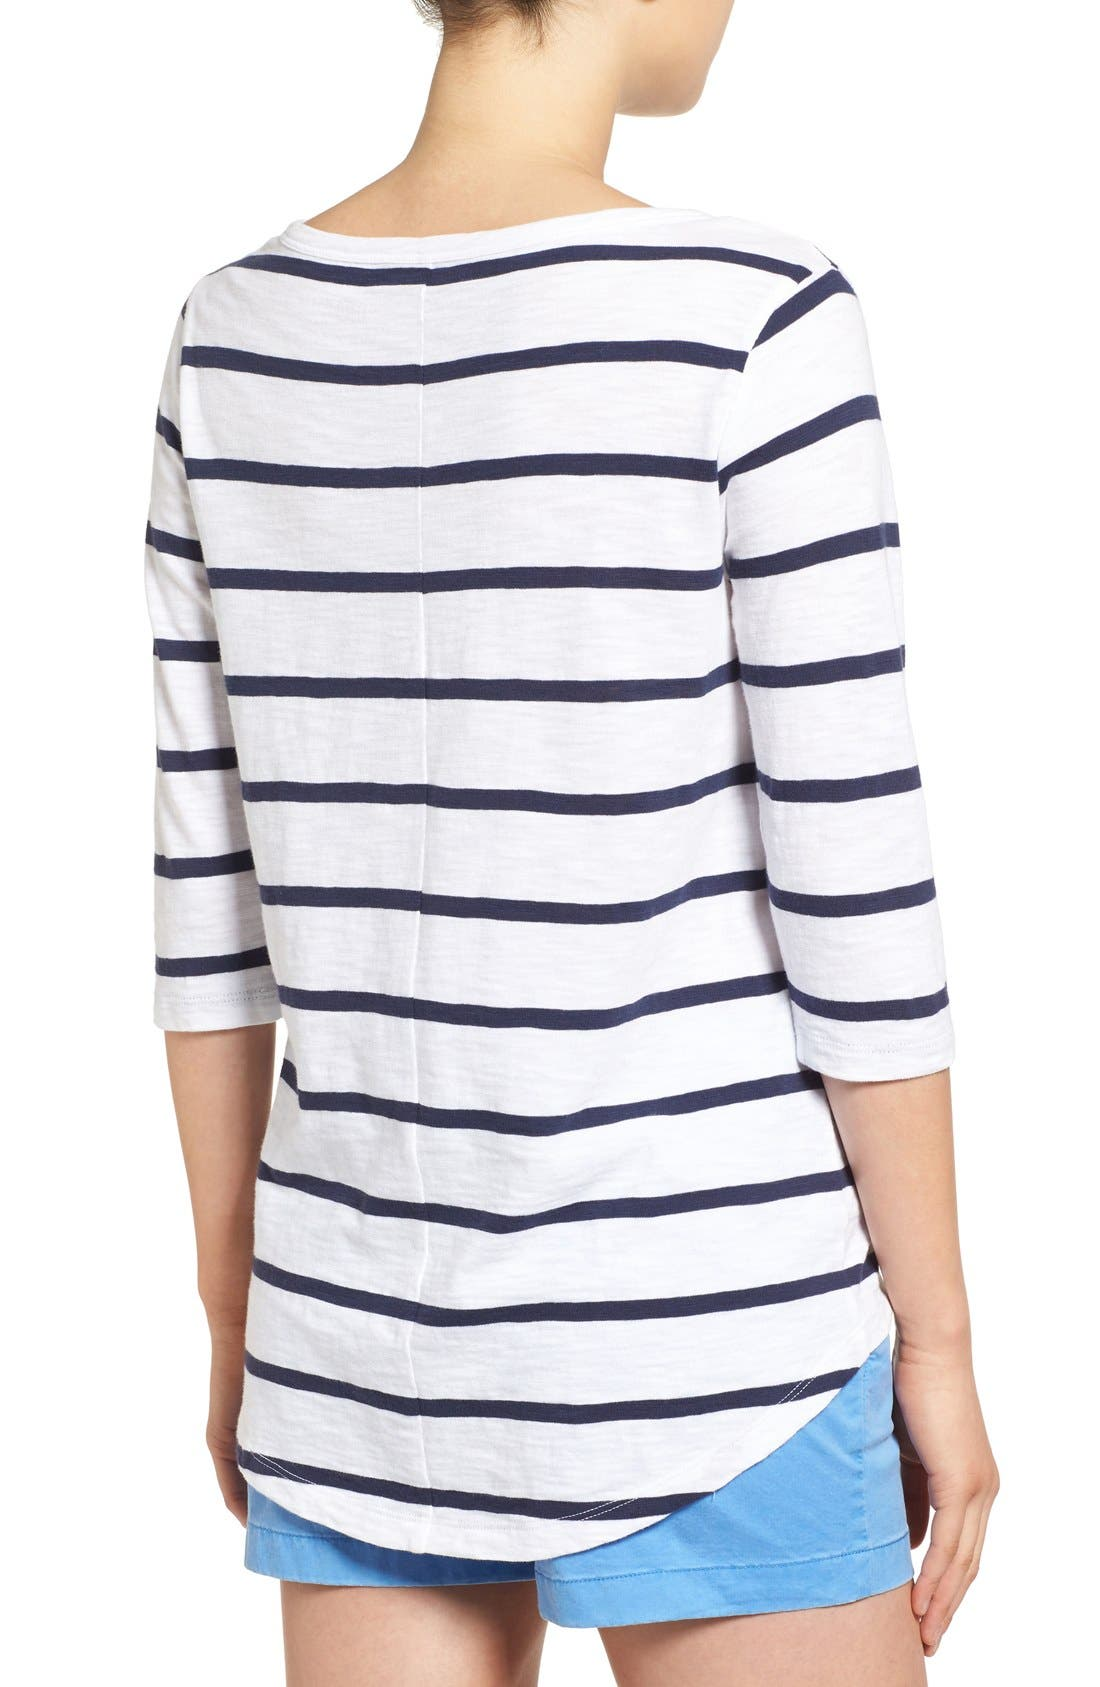 Alternate Image 2  - Vineyard Vines 'Anguilla' Stripe Tee